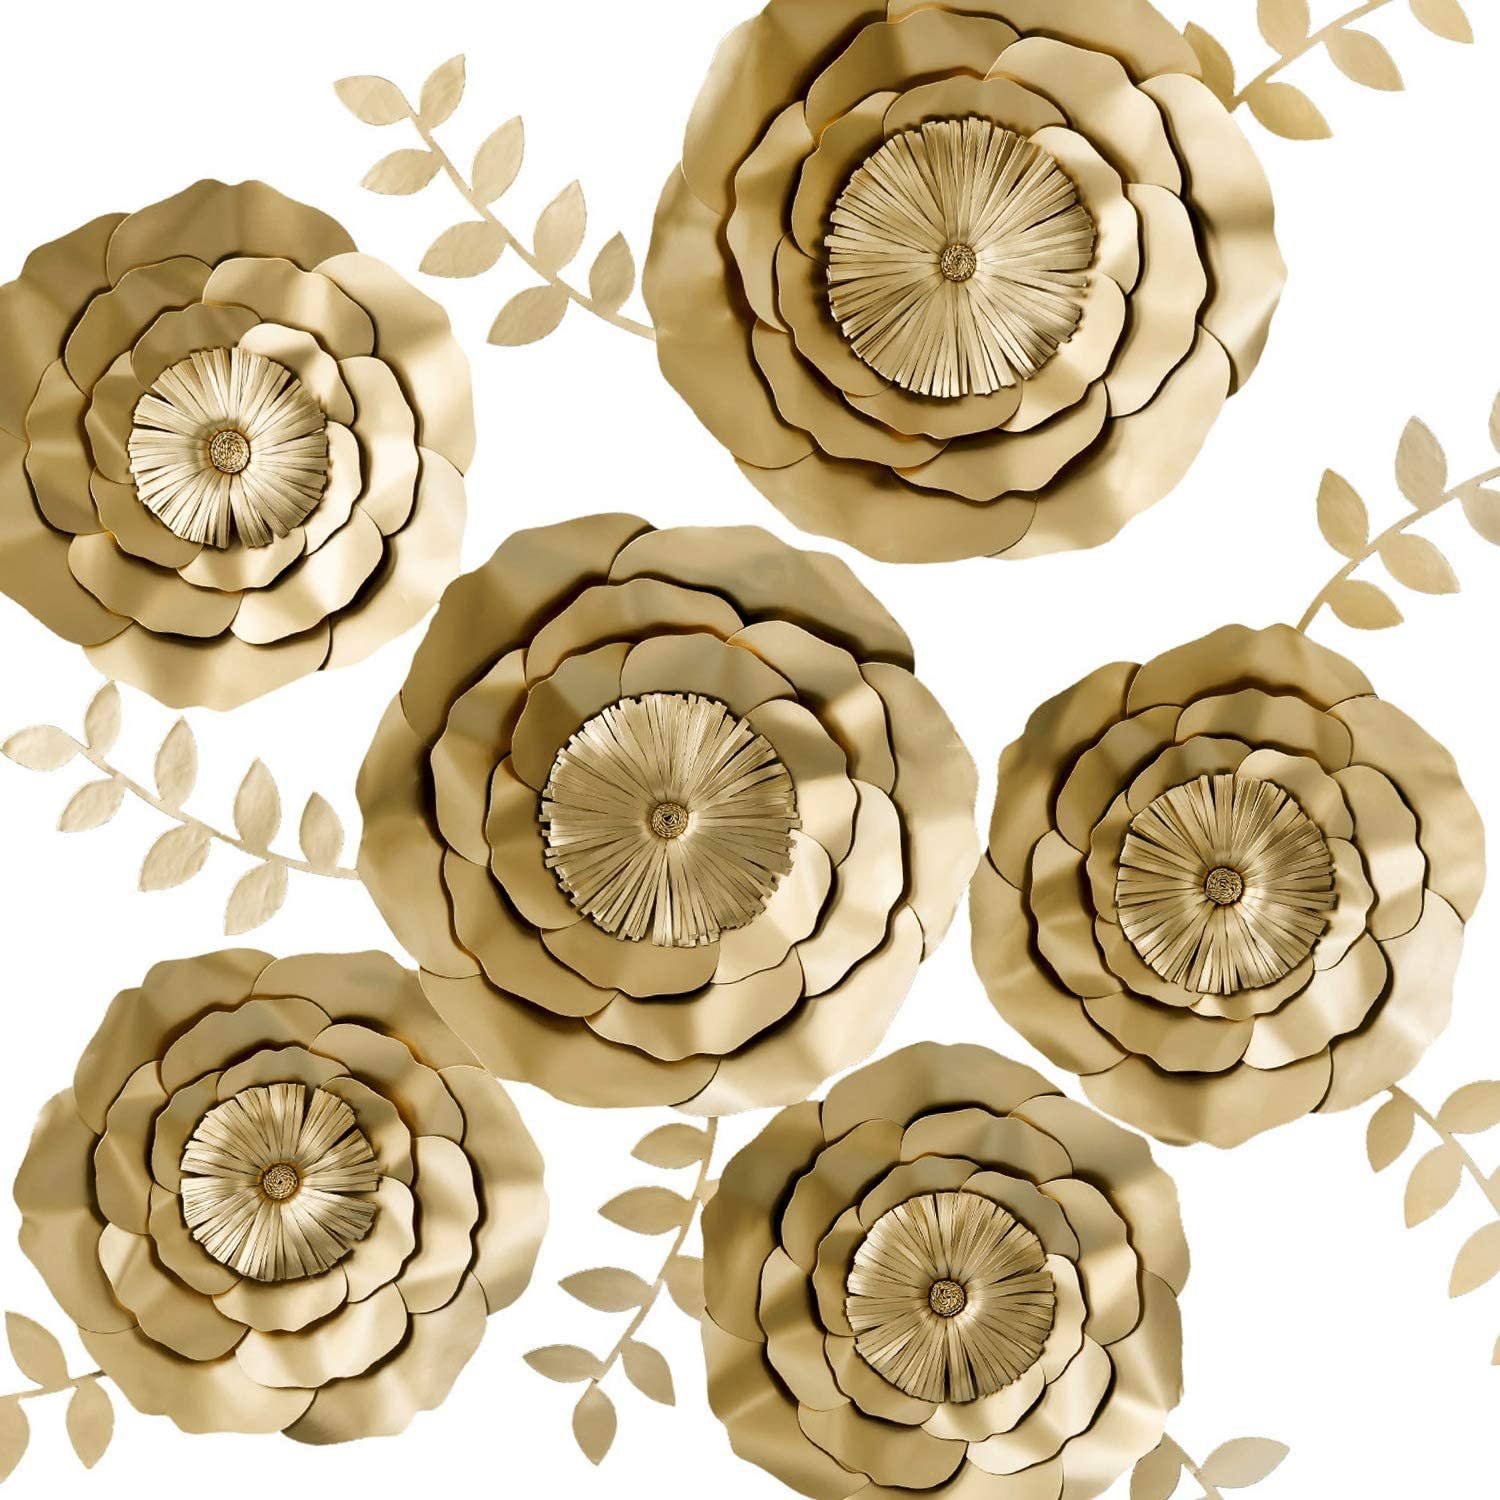 KEY SPRING 3D Paper Flower Decorations, Giant Paper Flowers, Large Handcrafted Paper Flowers (Gold, Set of 6) for Wedding Backdrop, Bridal Shower, Wedding Centerpieces, Nursery Wall Decor